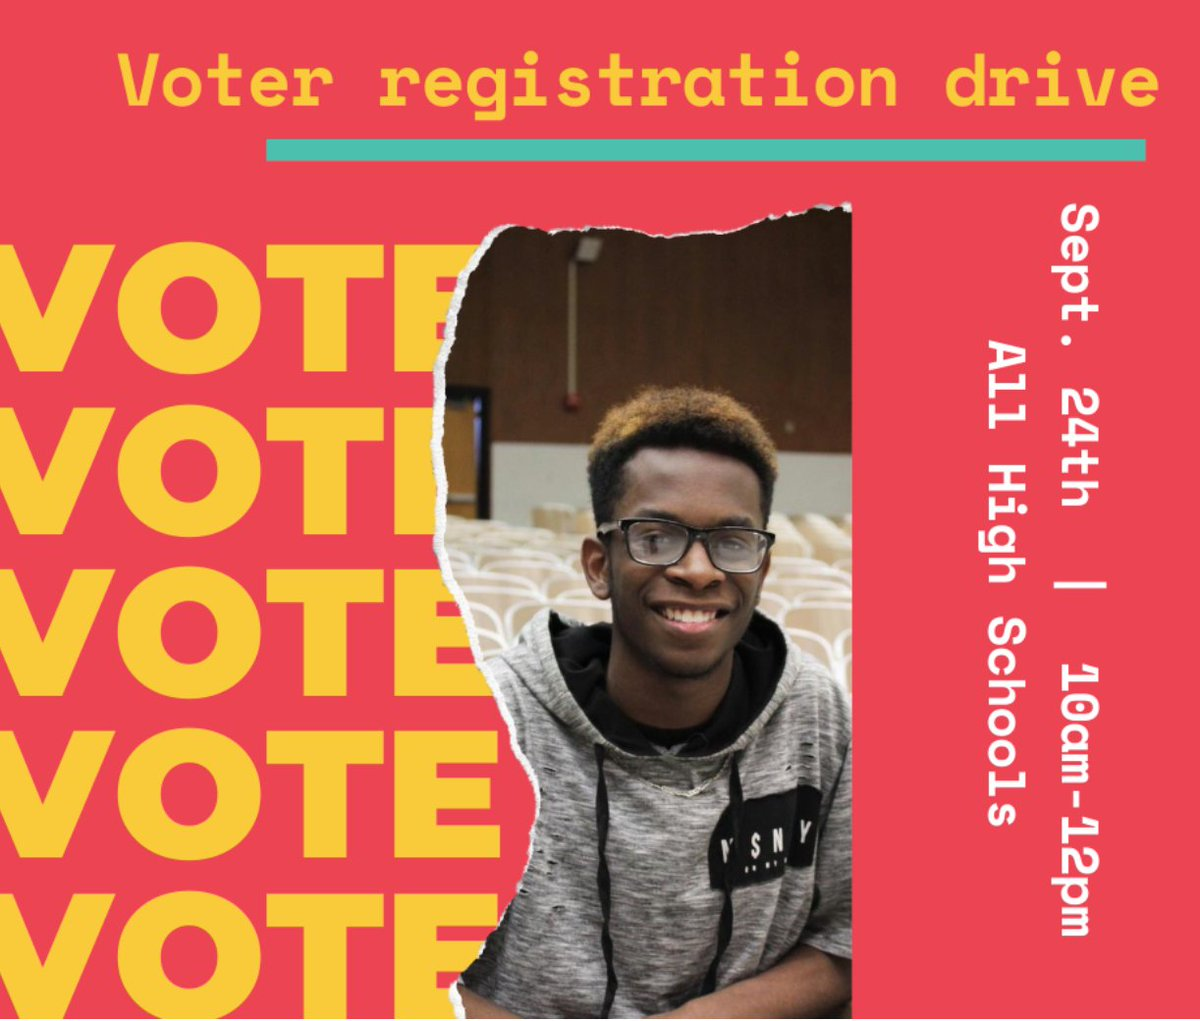 From 10 AM to 12 PM tomorrow, you can register vote at every #OKCPS high school! Visit one of the outdoor voter registration booths hosted by @gencitizen!  Thanks to Generation Citizen & @LWVOklahoma for getting OKCPS registered and ready to vote on Nov. 3!  #OKCPSVotes https://t.co/H68AdkEFRG